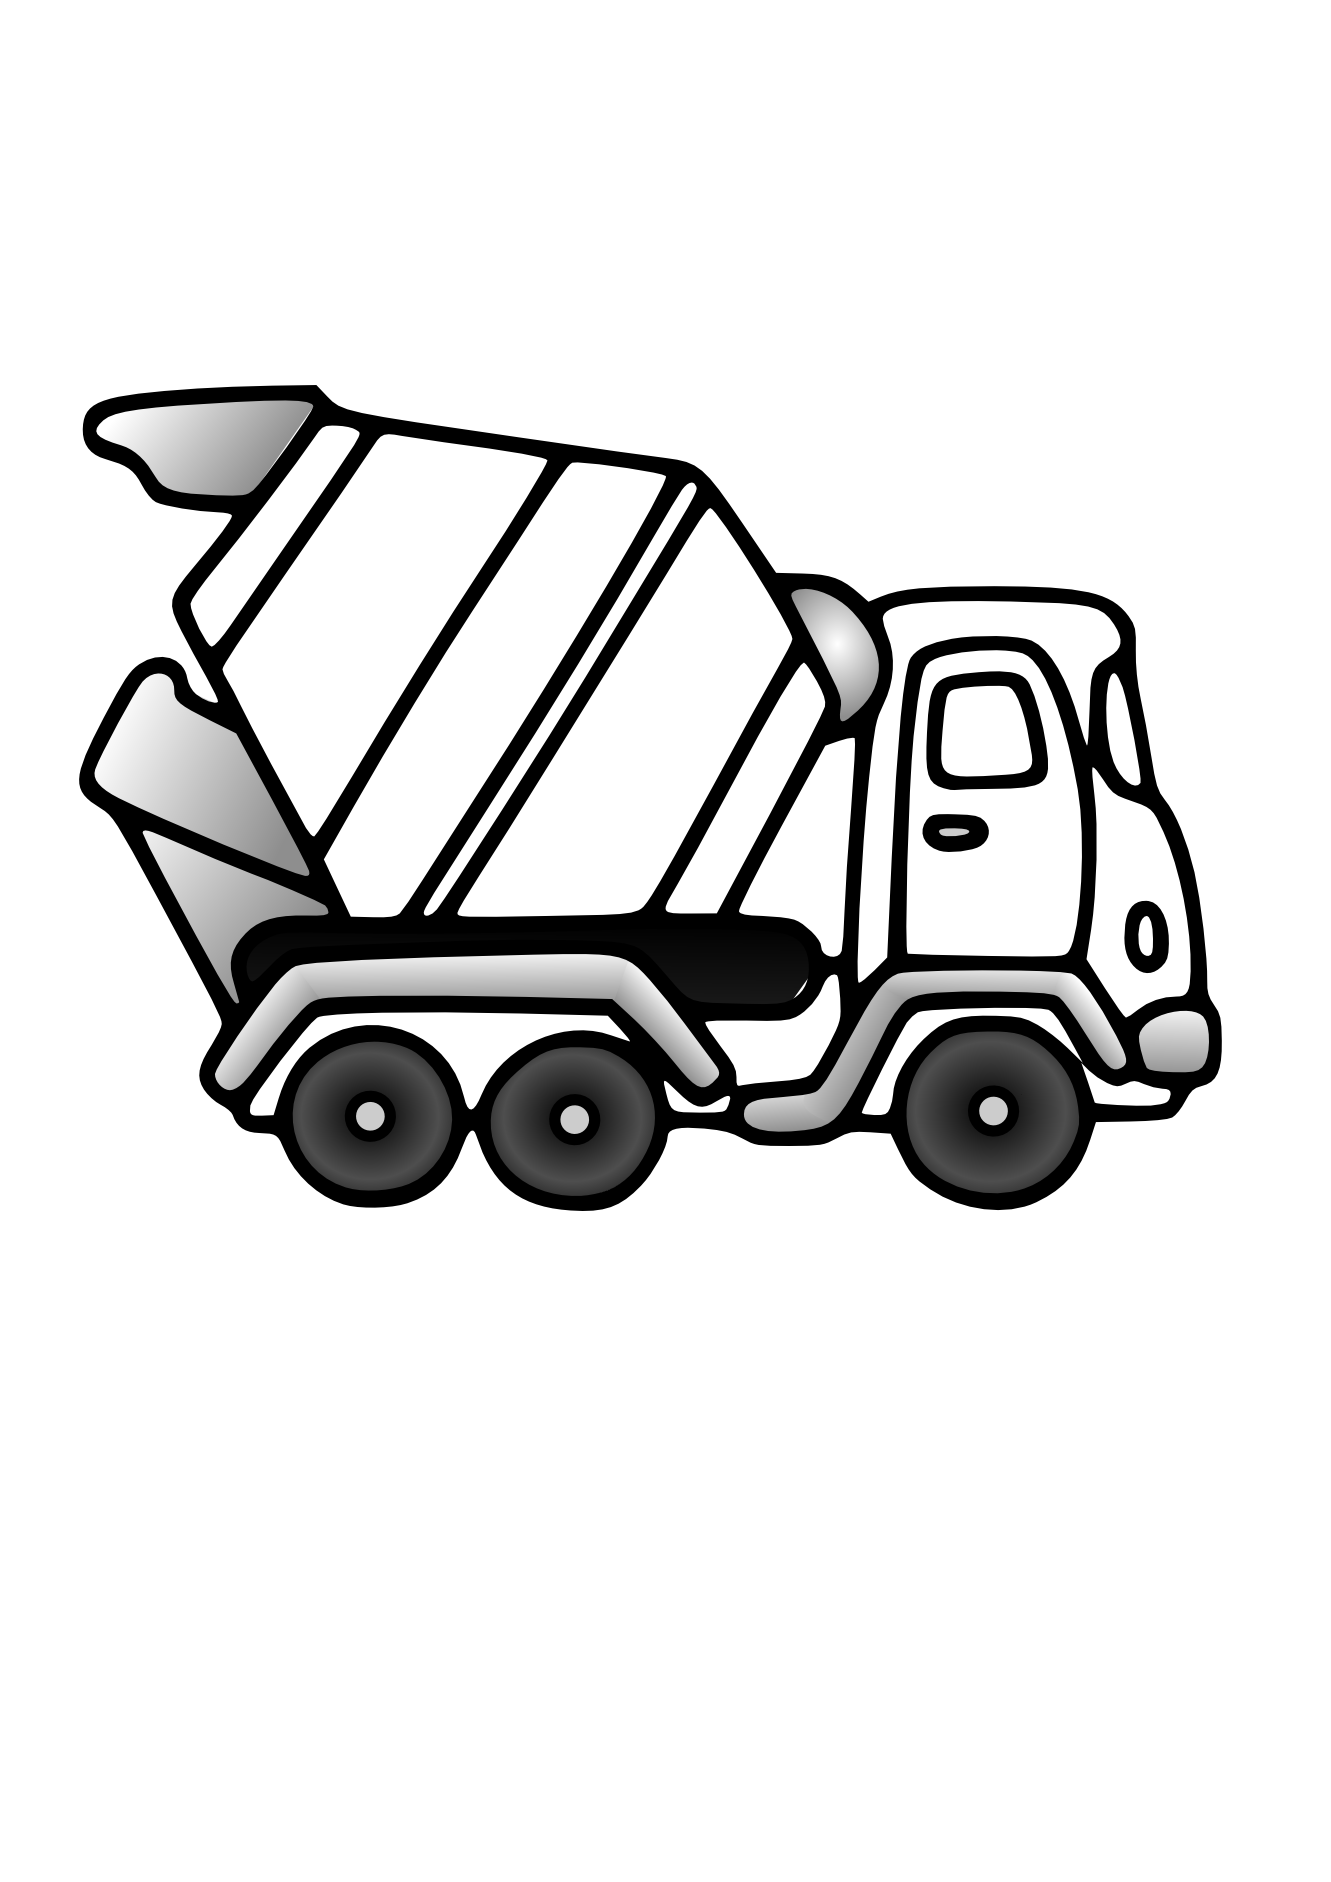 Cement Truck Clip Art Black And White. Truck. Download Free Image ...